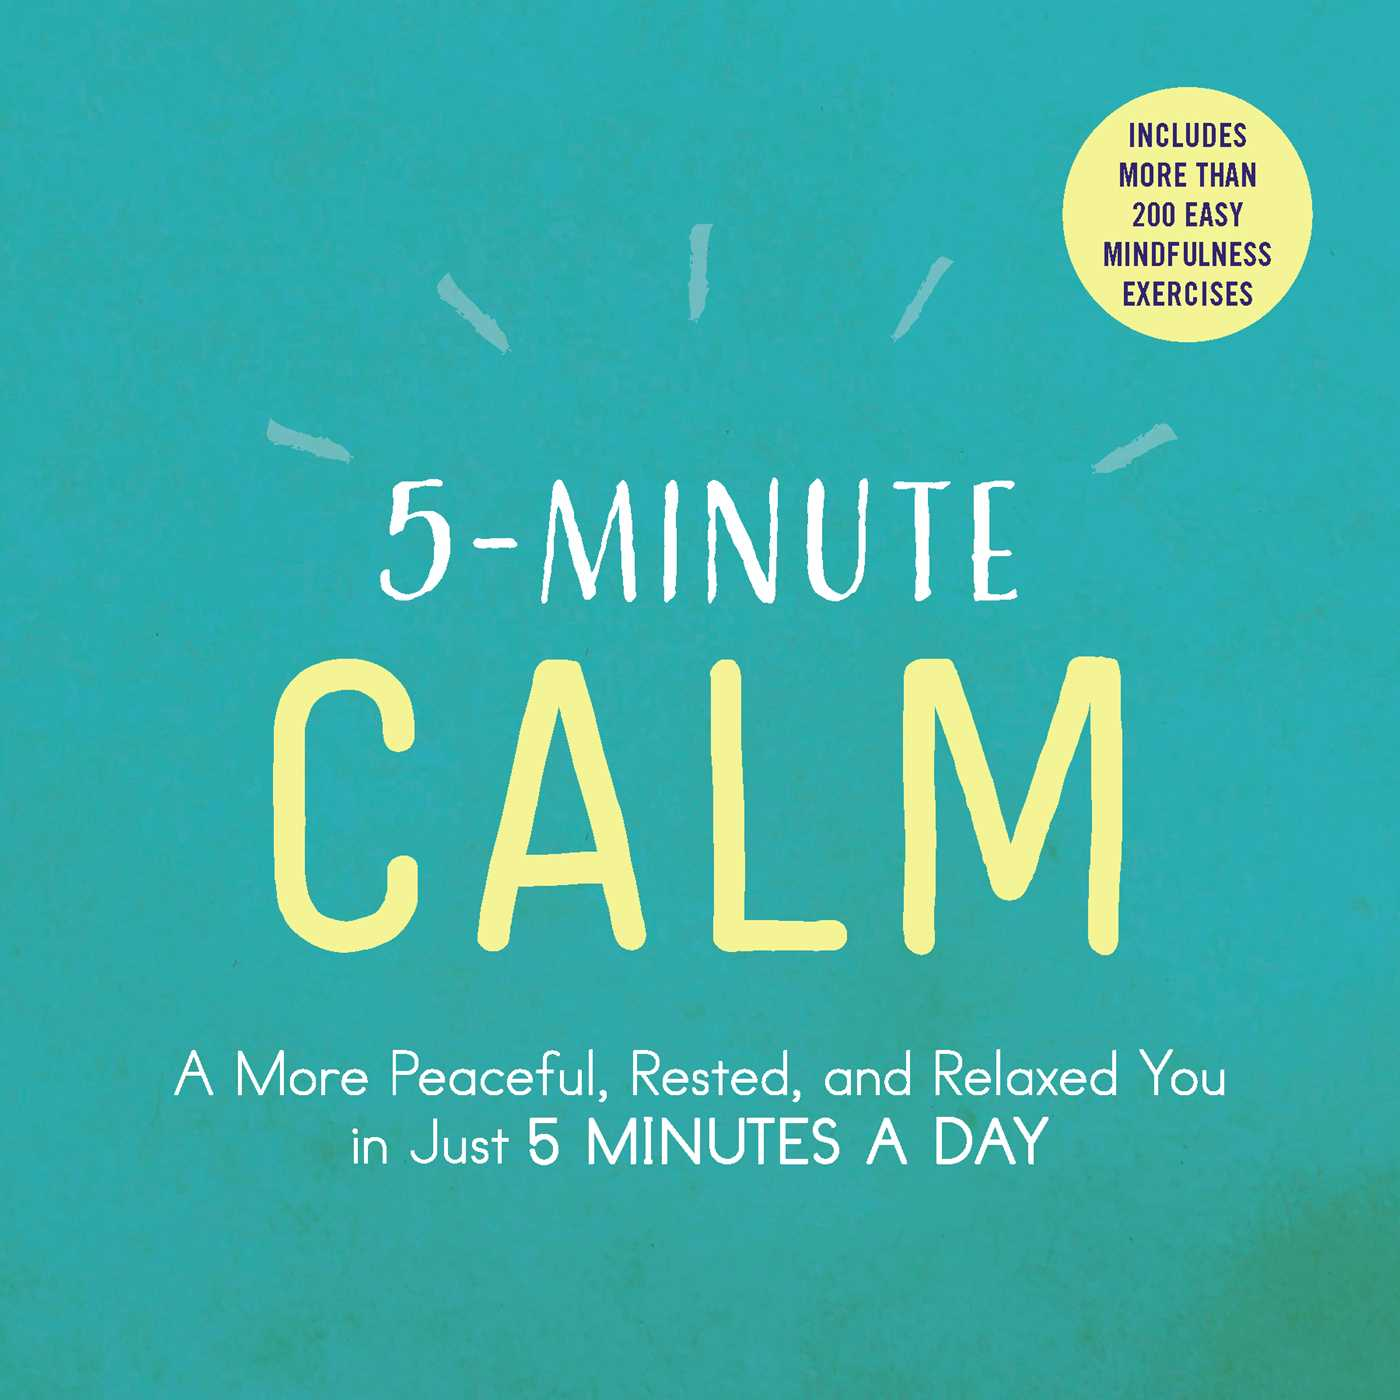 5 minute calm book by adams media official publisher page